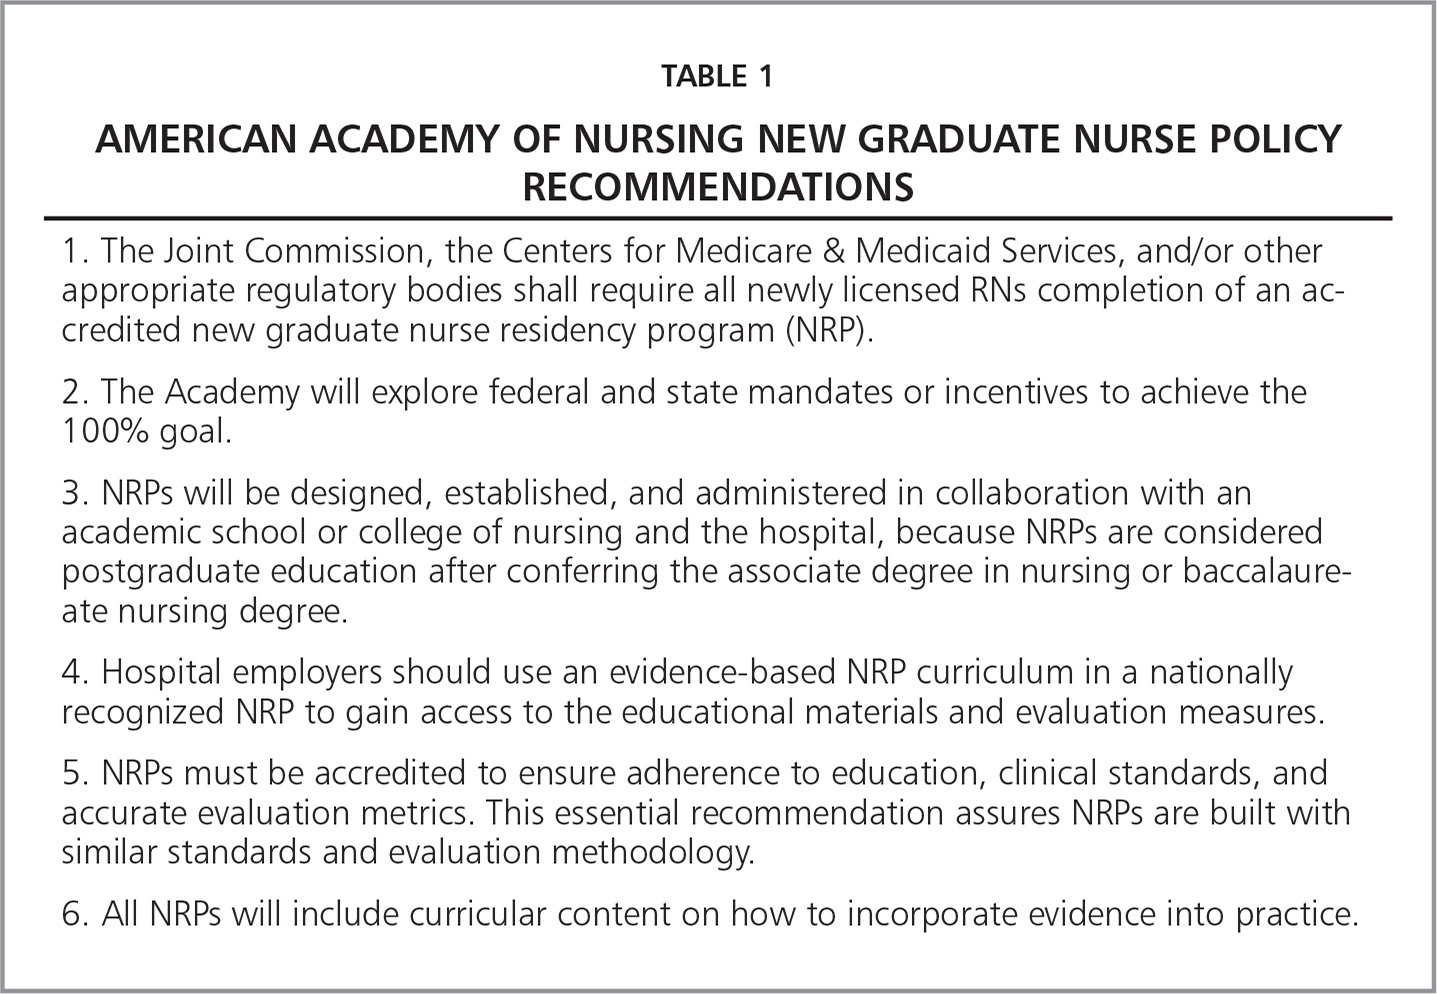 American Academy of Nursing New Graduate Nurse Policy Recommendations